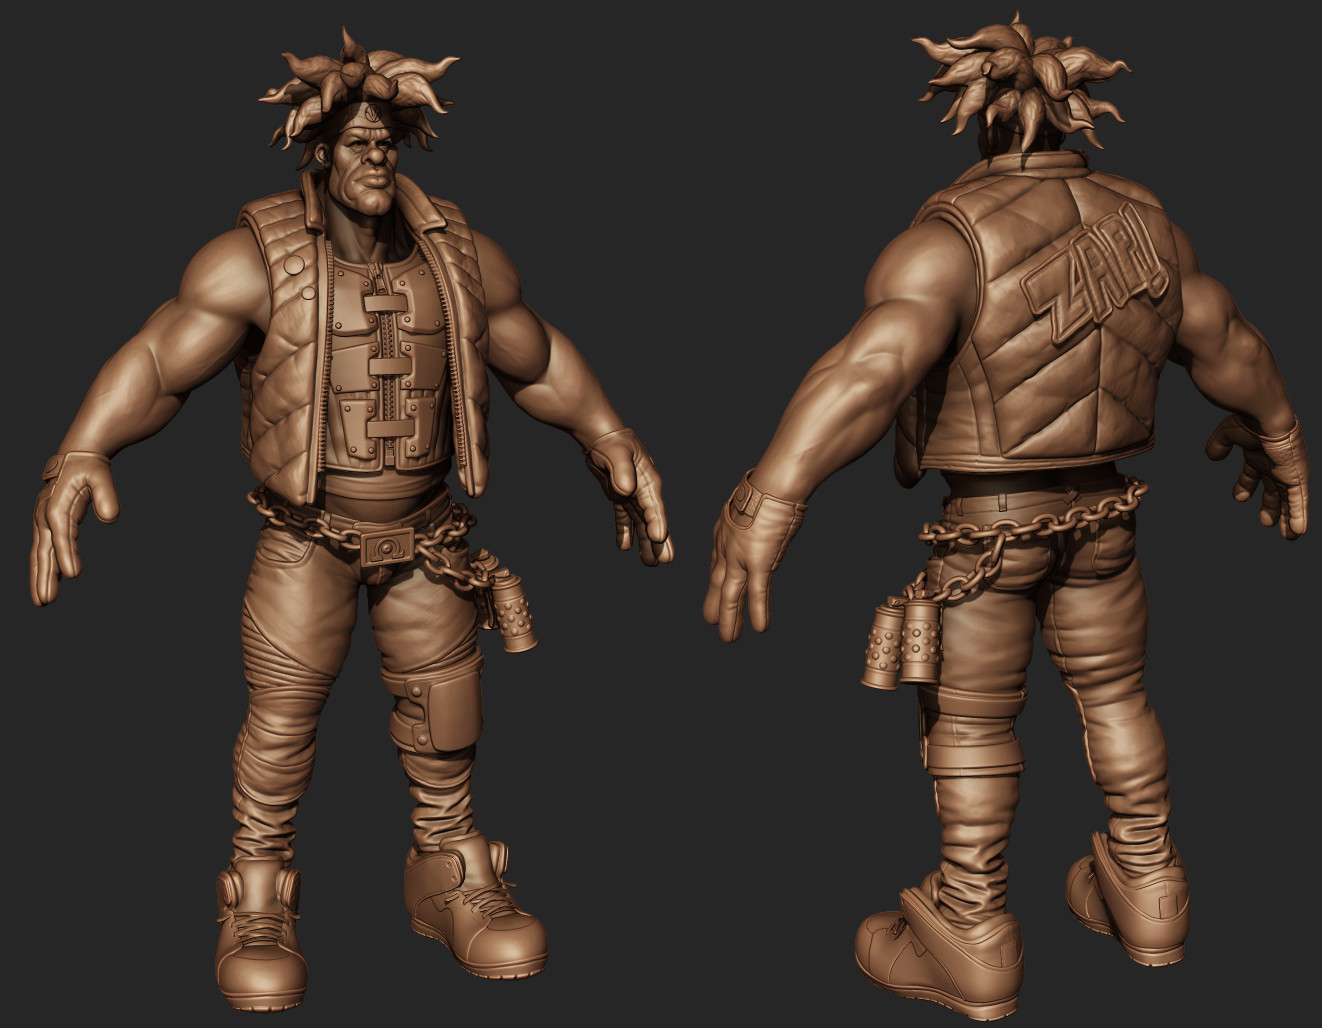 Character sculpt ready for retopo and texturing.